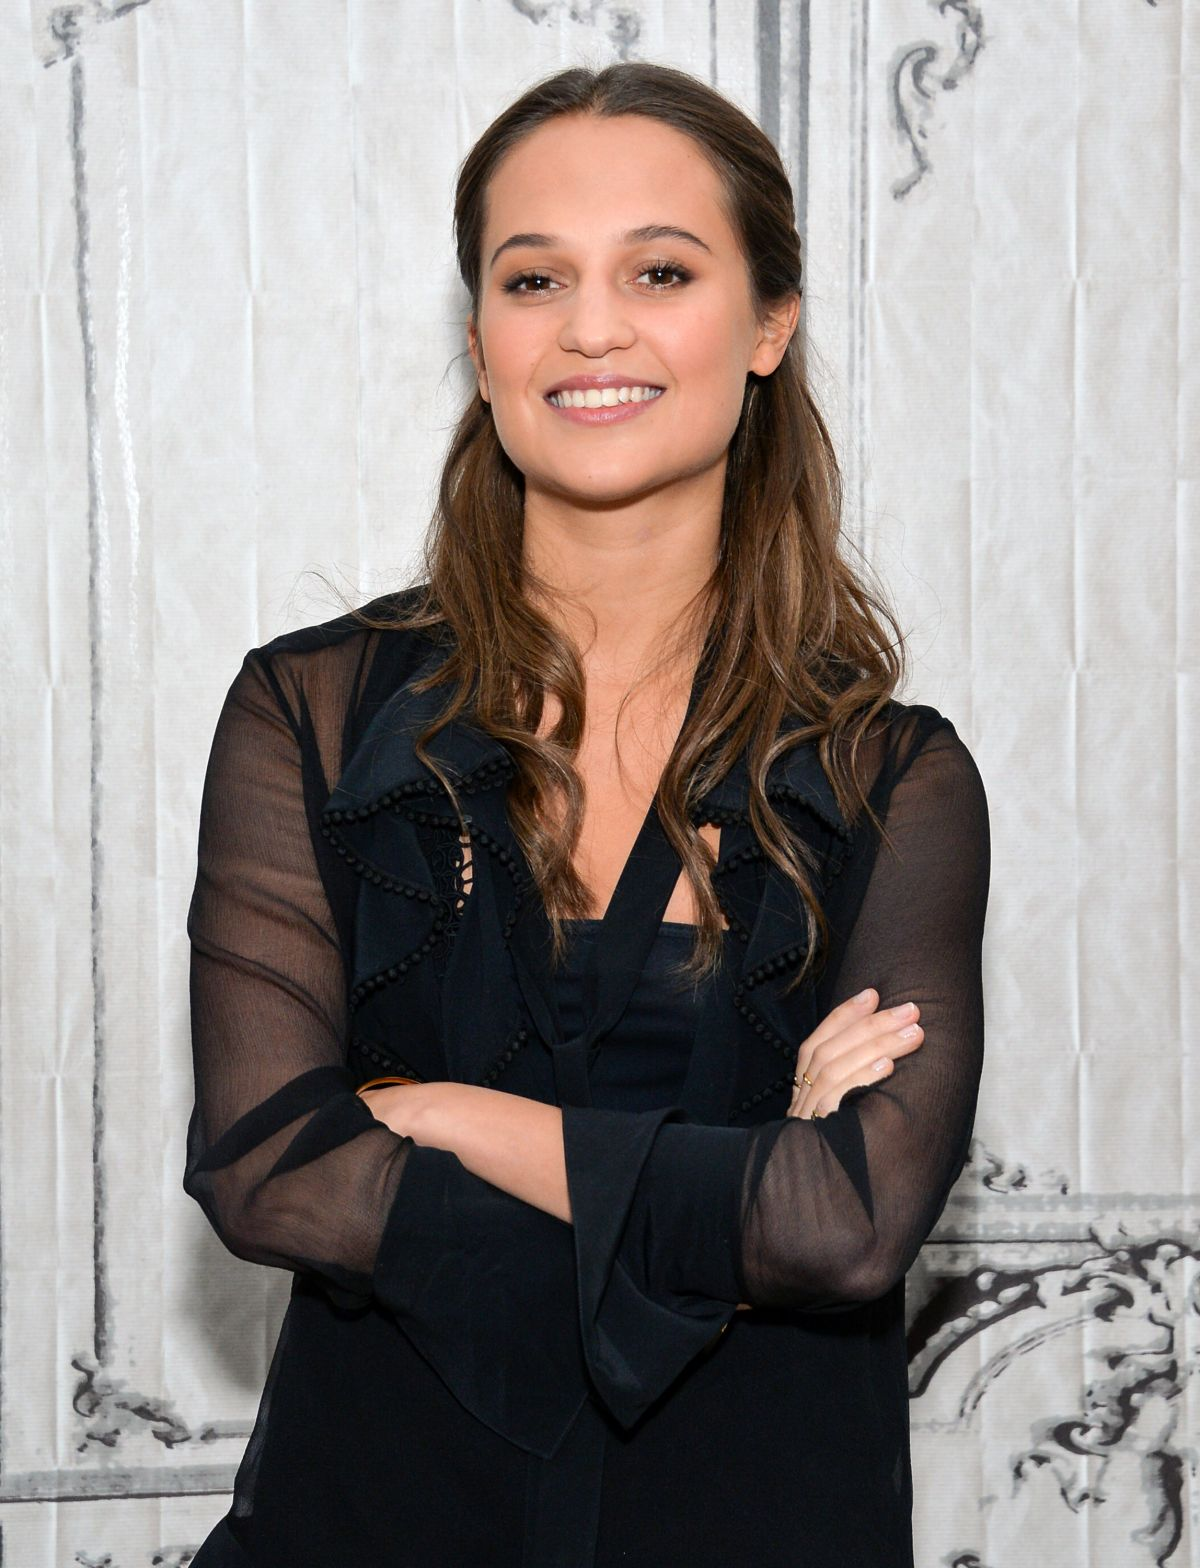 ALICIA VIKANDER at AOL Build Speaker Series in New York 12/15/2015